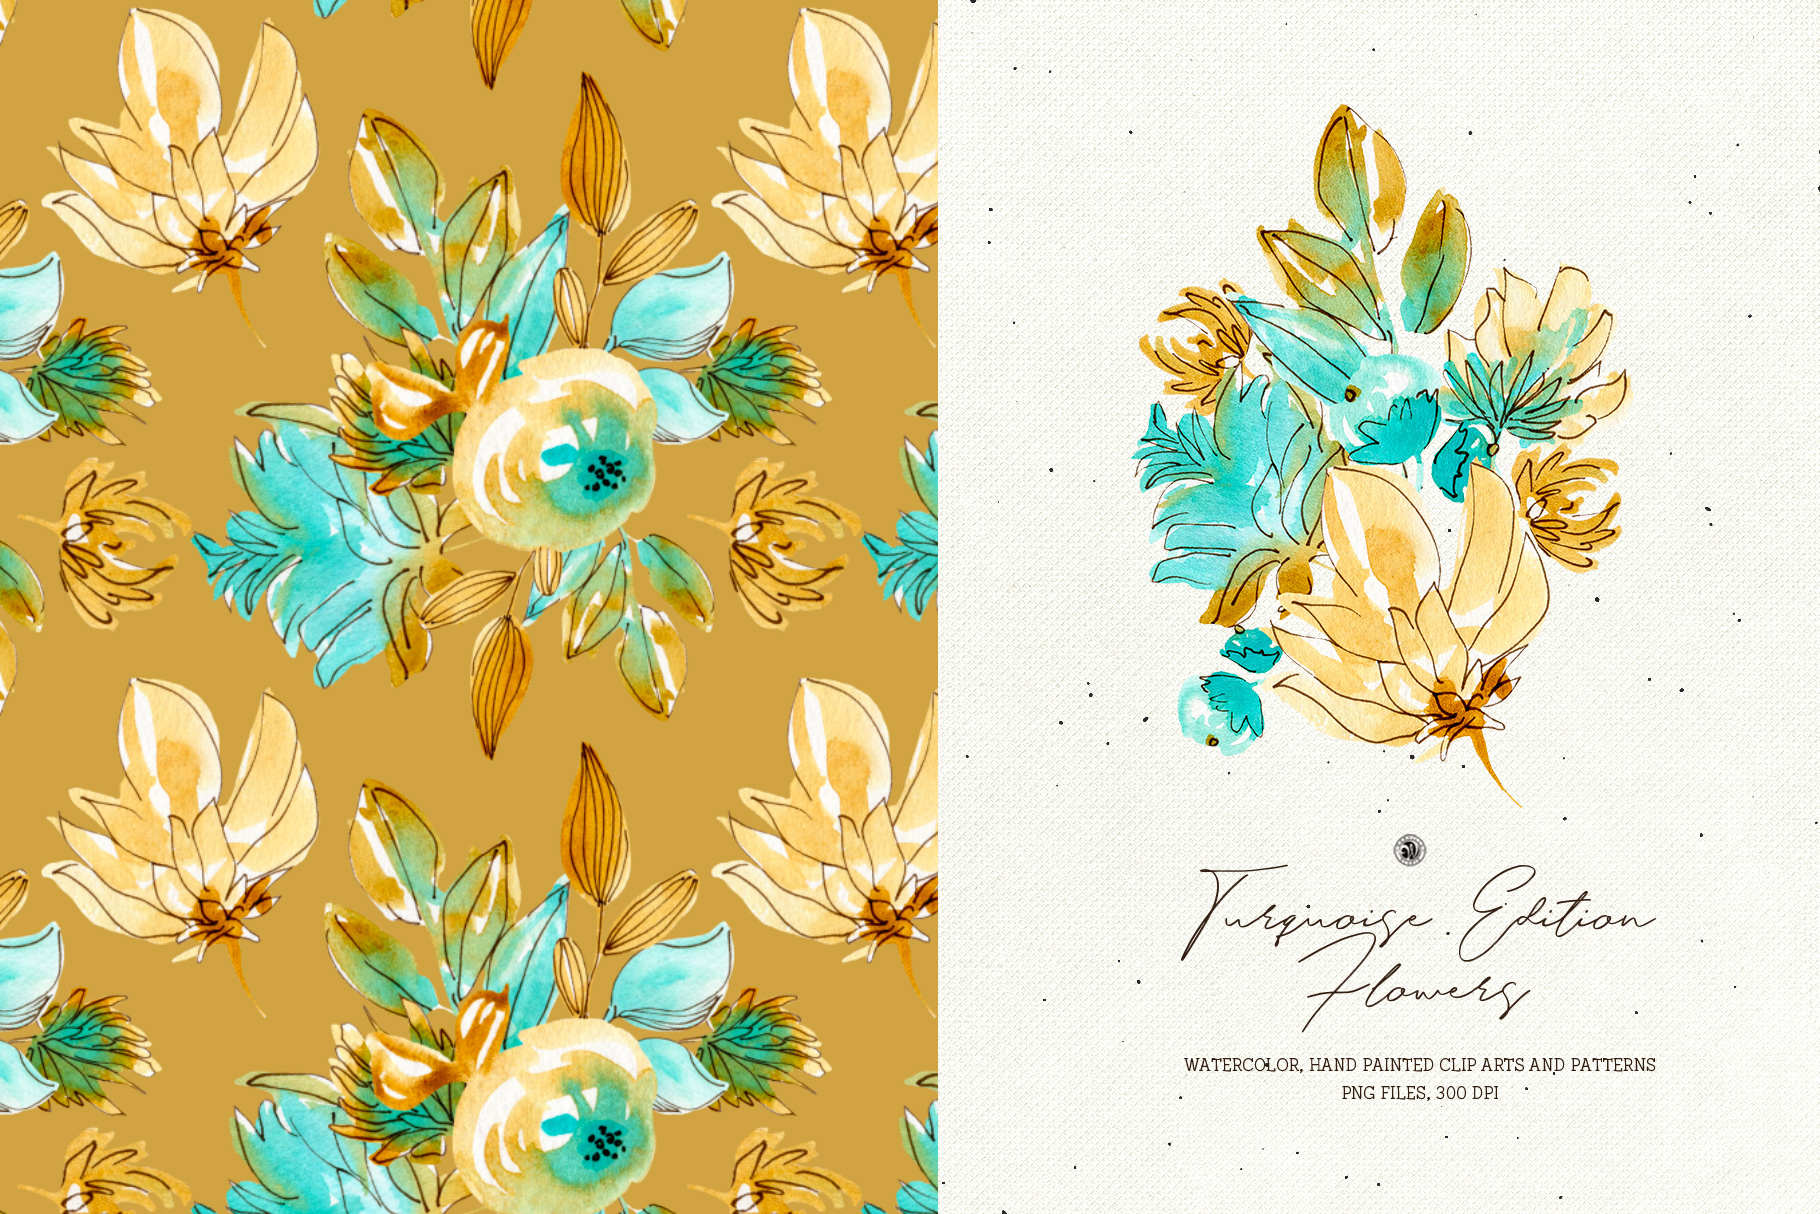 Turquoise Edition Flowers example image 3